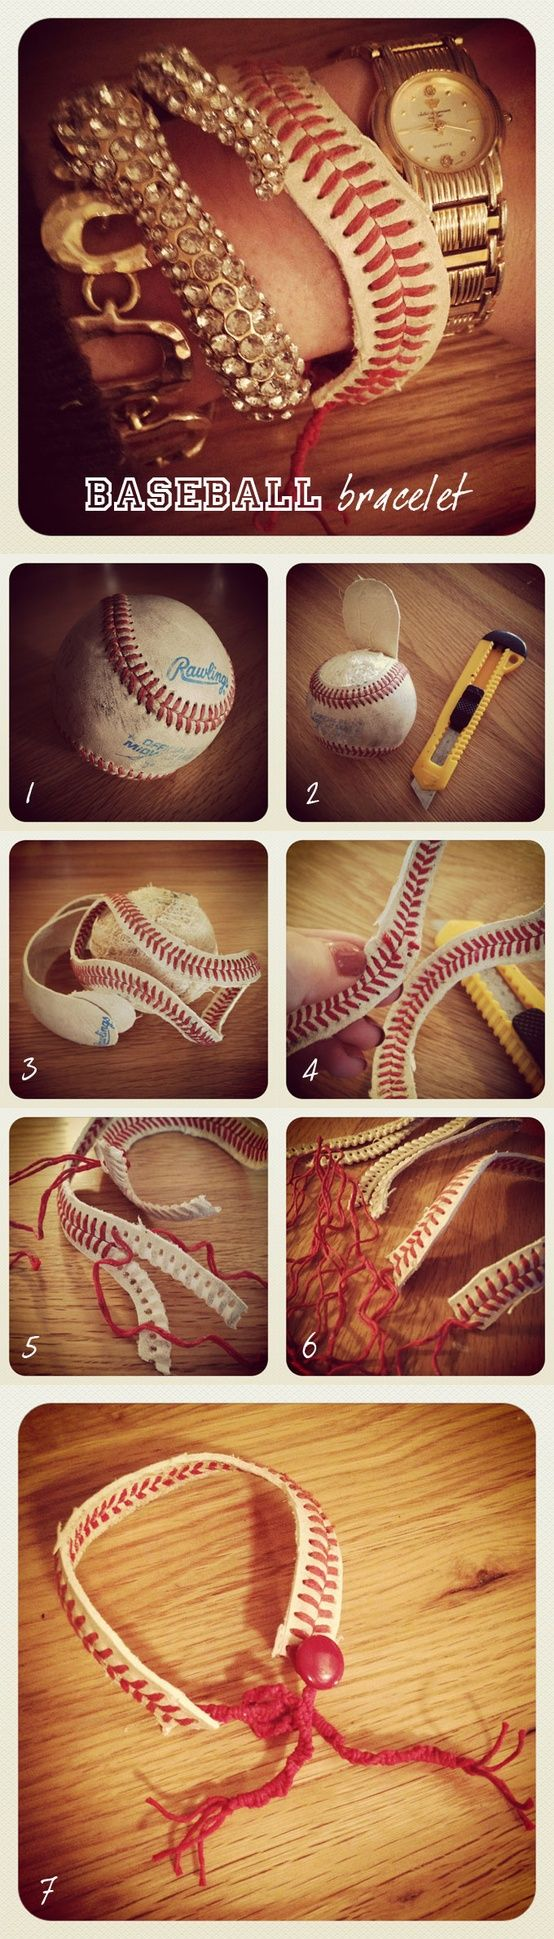 Baseball Bracelet - Click image to find more Women's Fashion Pinterest pins